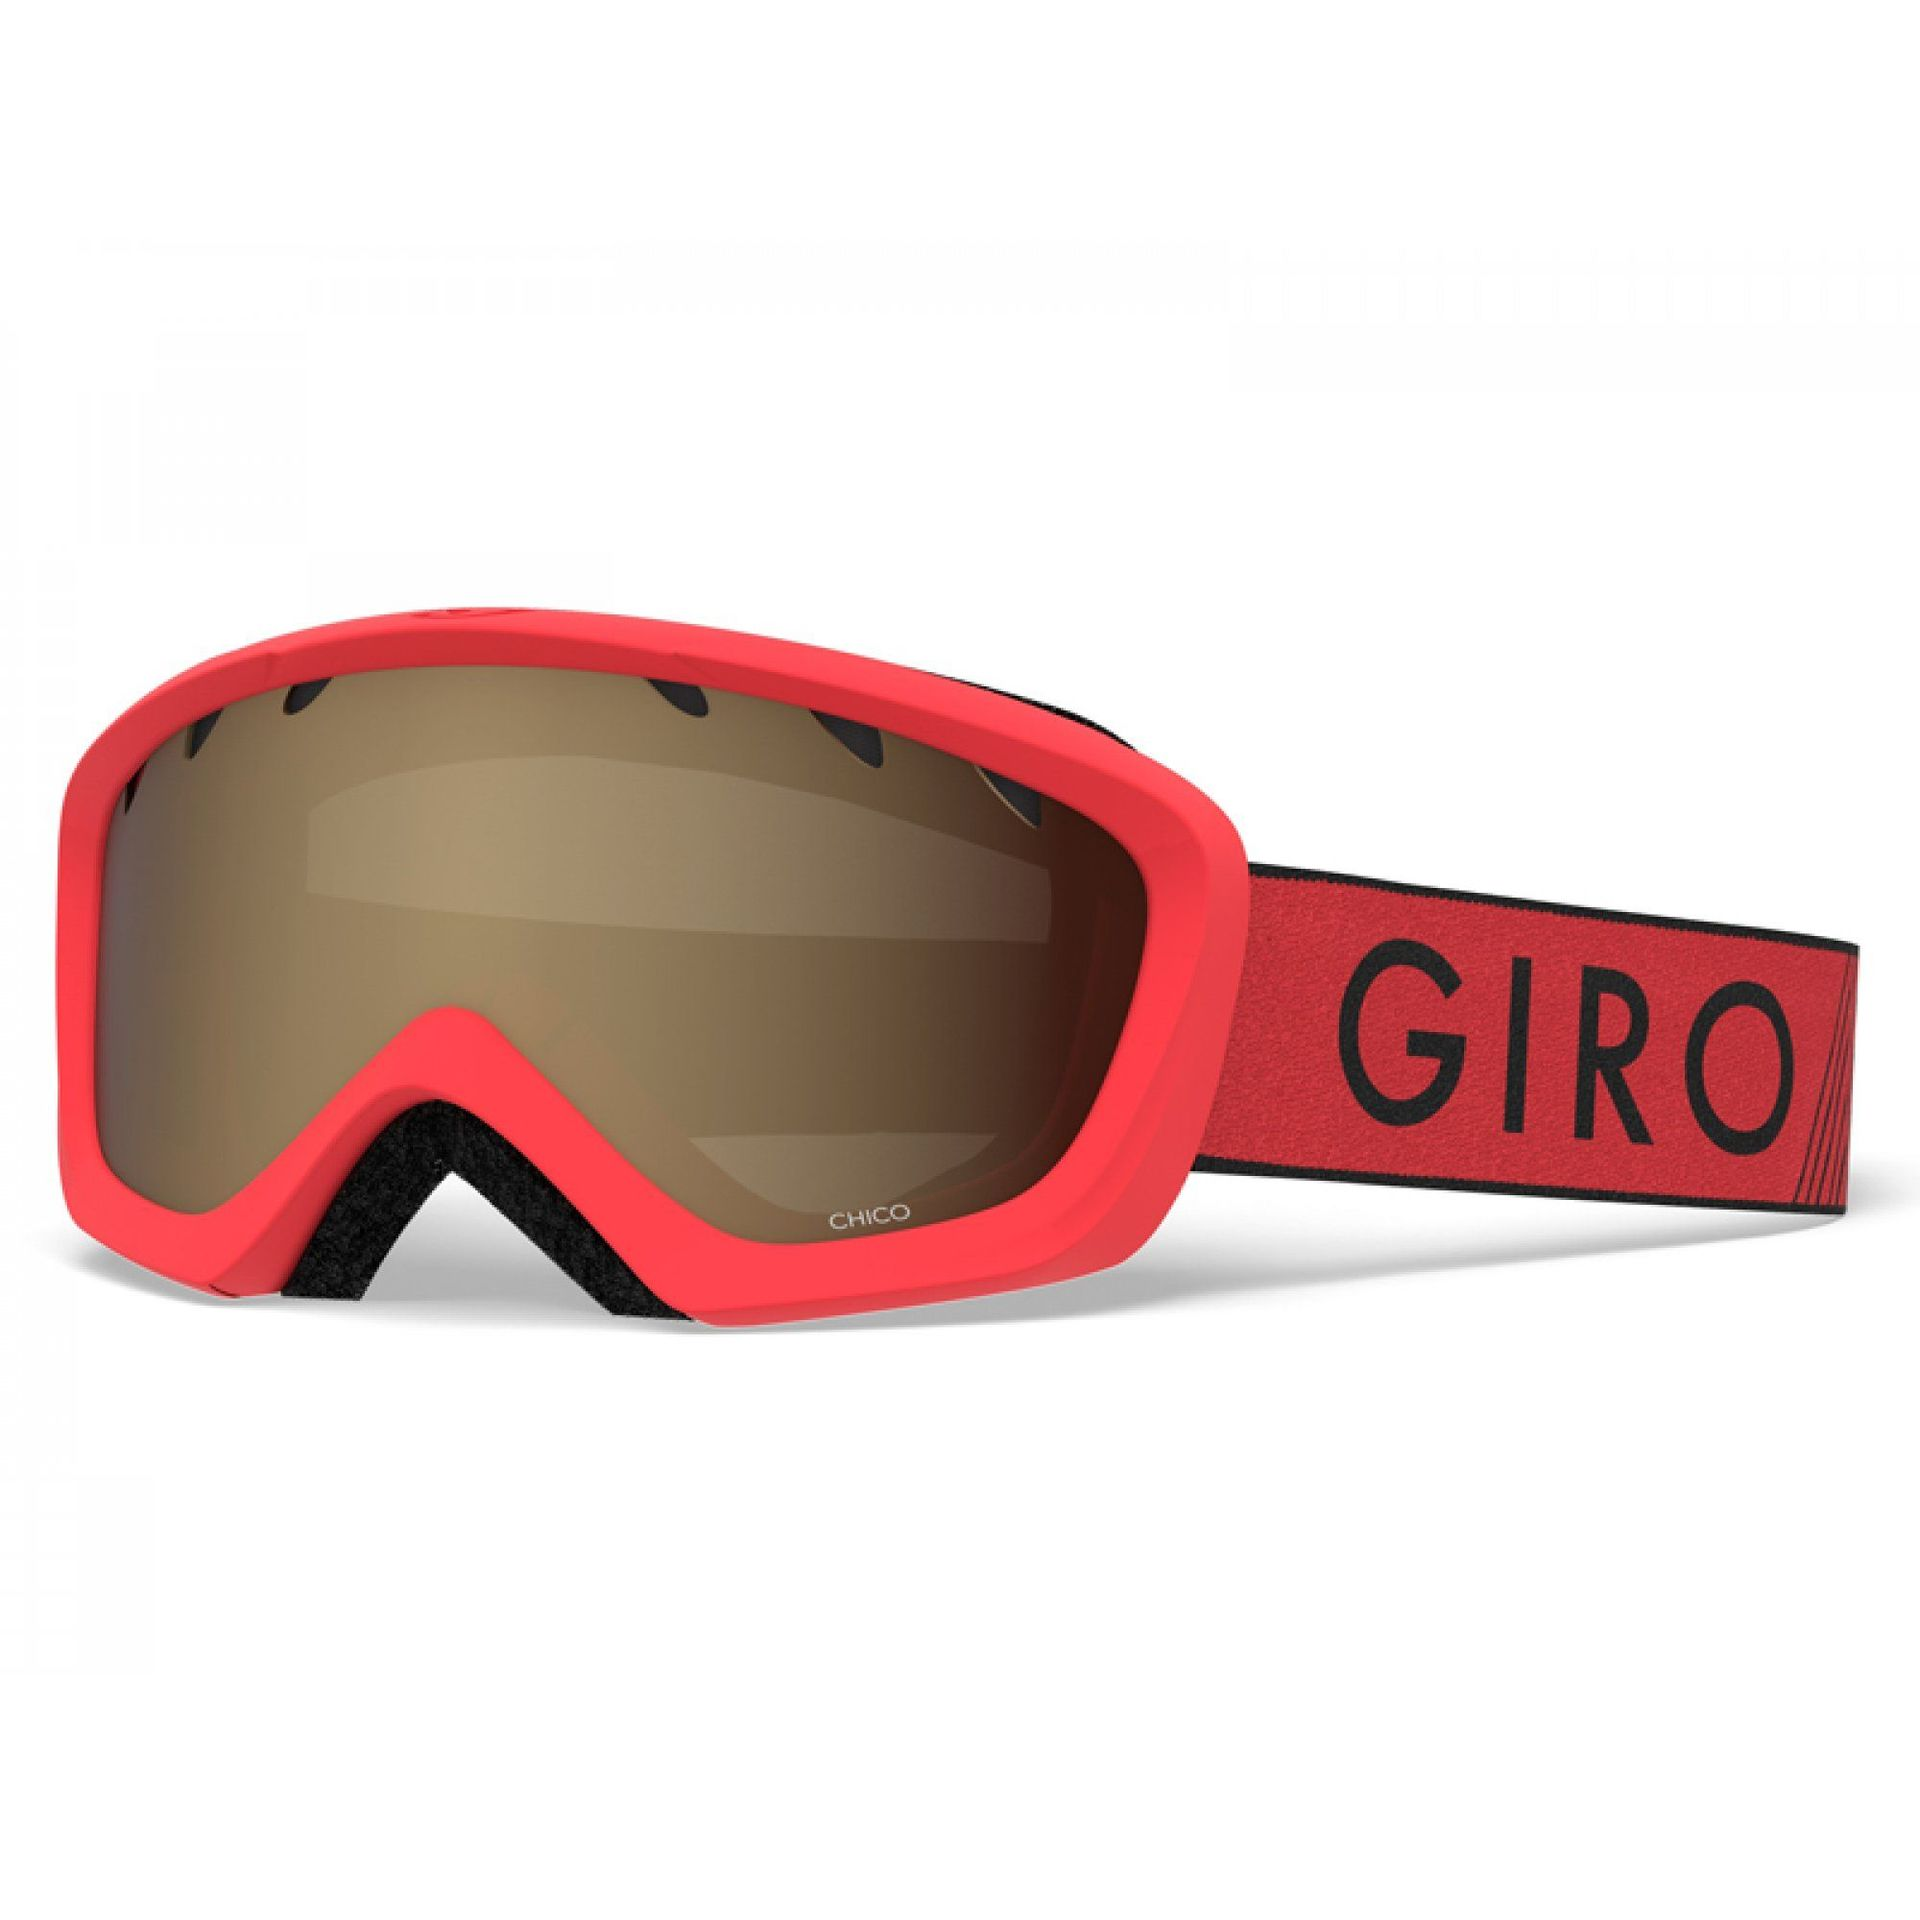 GOGLE GIRO CHICO RED BLACK ZOOM|AMBER ROSE 1